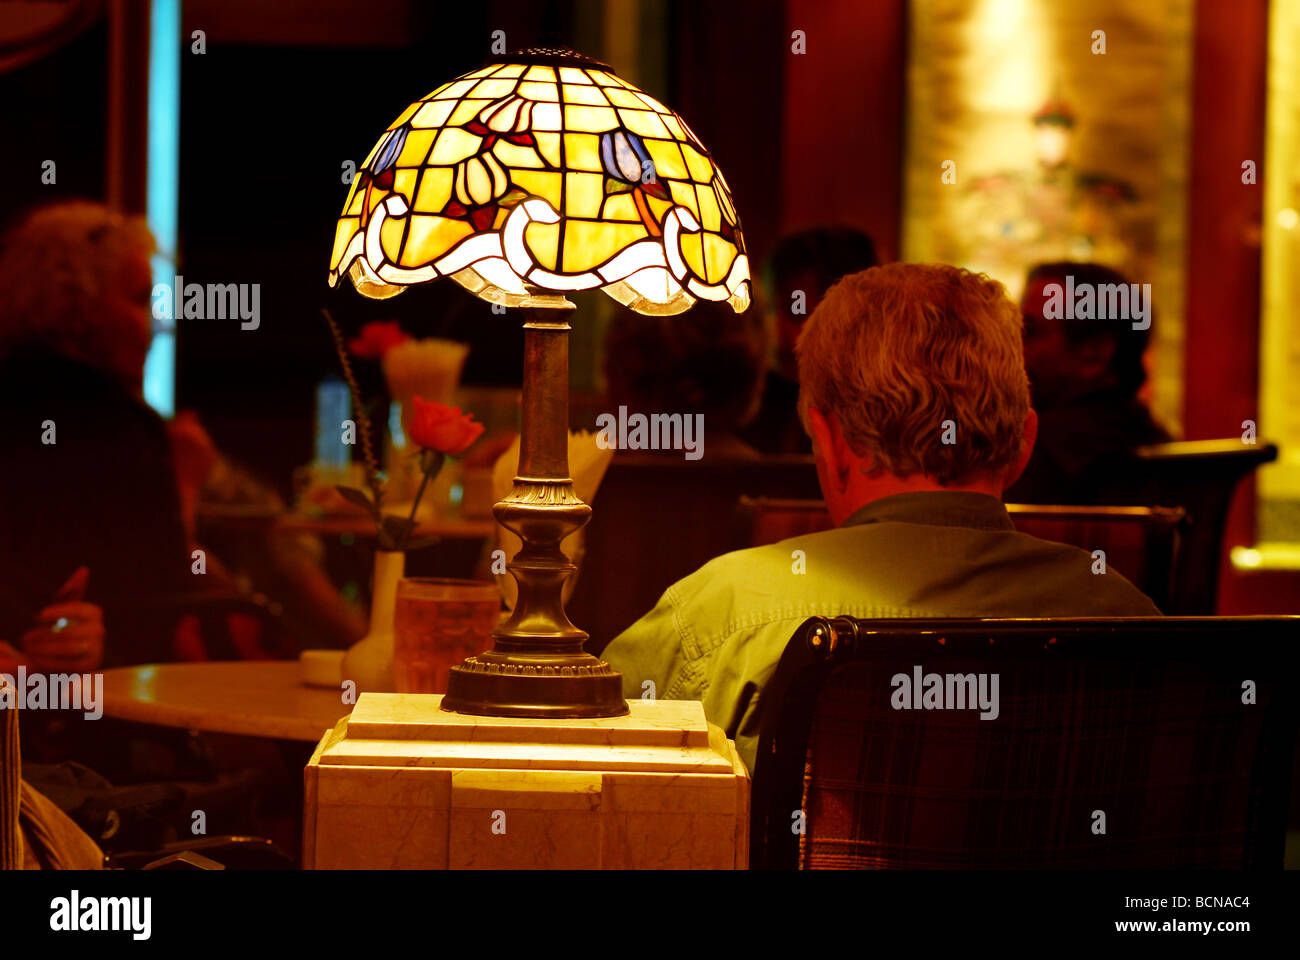 Foreign tourist resting in richly decorated café with stain glass lamp, Shanghai, China - Stock Image